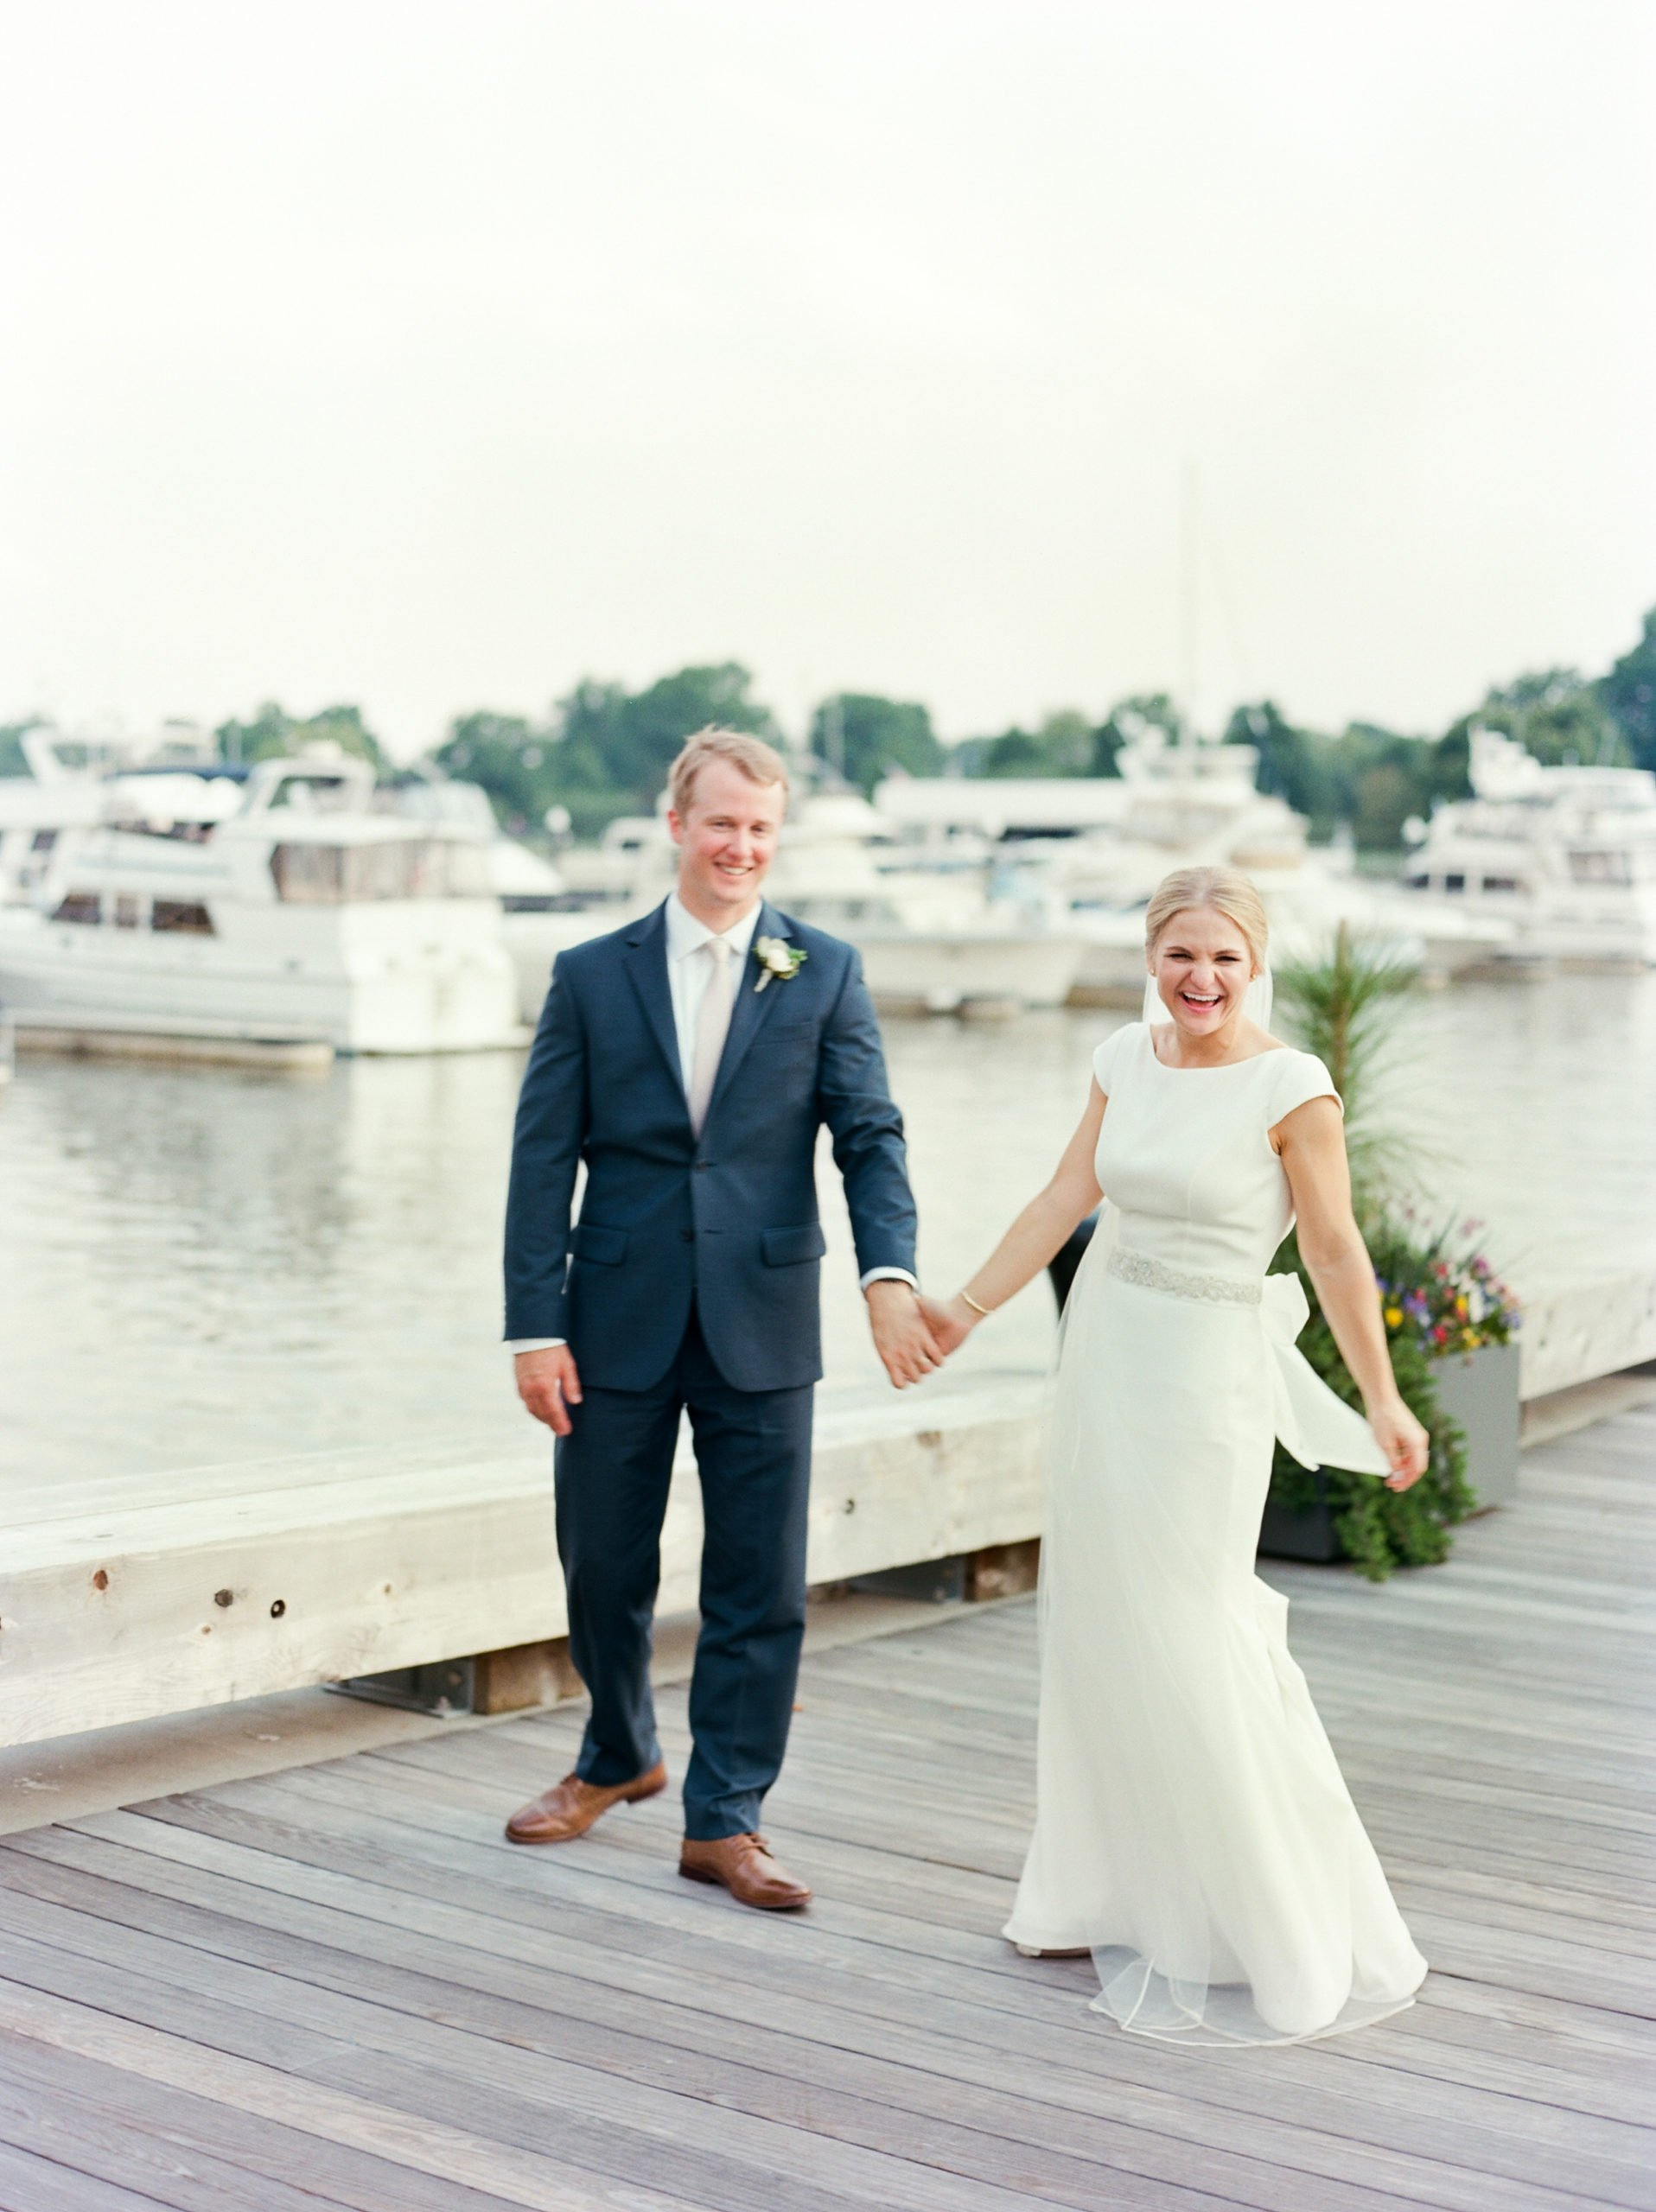 51Chesney_Travis_Intercontinental_Hote_DC_Wharf_Wedding_AstridPhotography134070040014-2